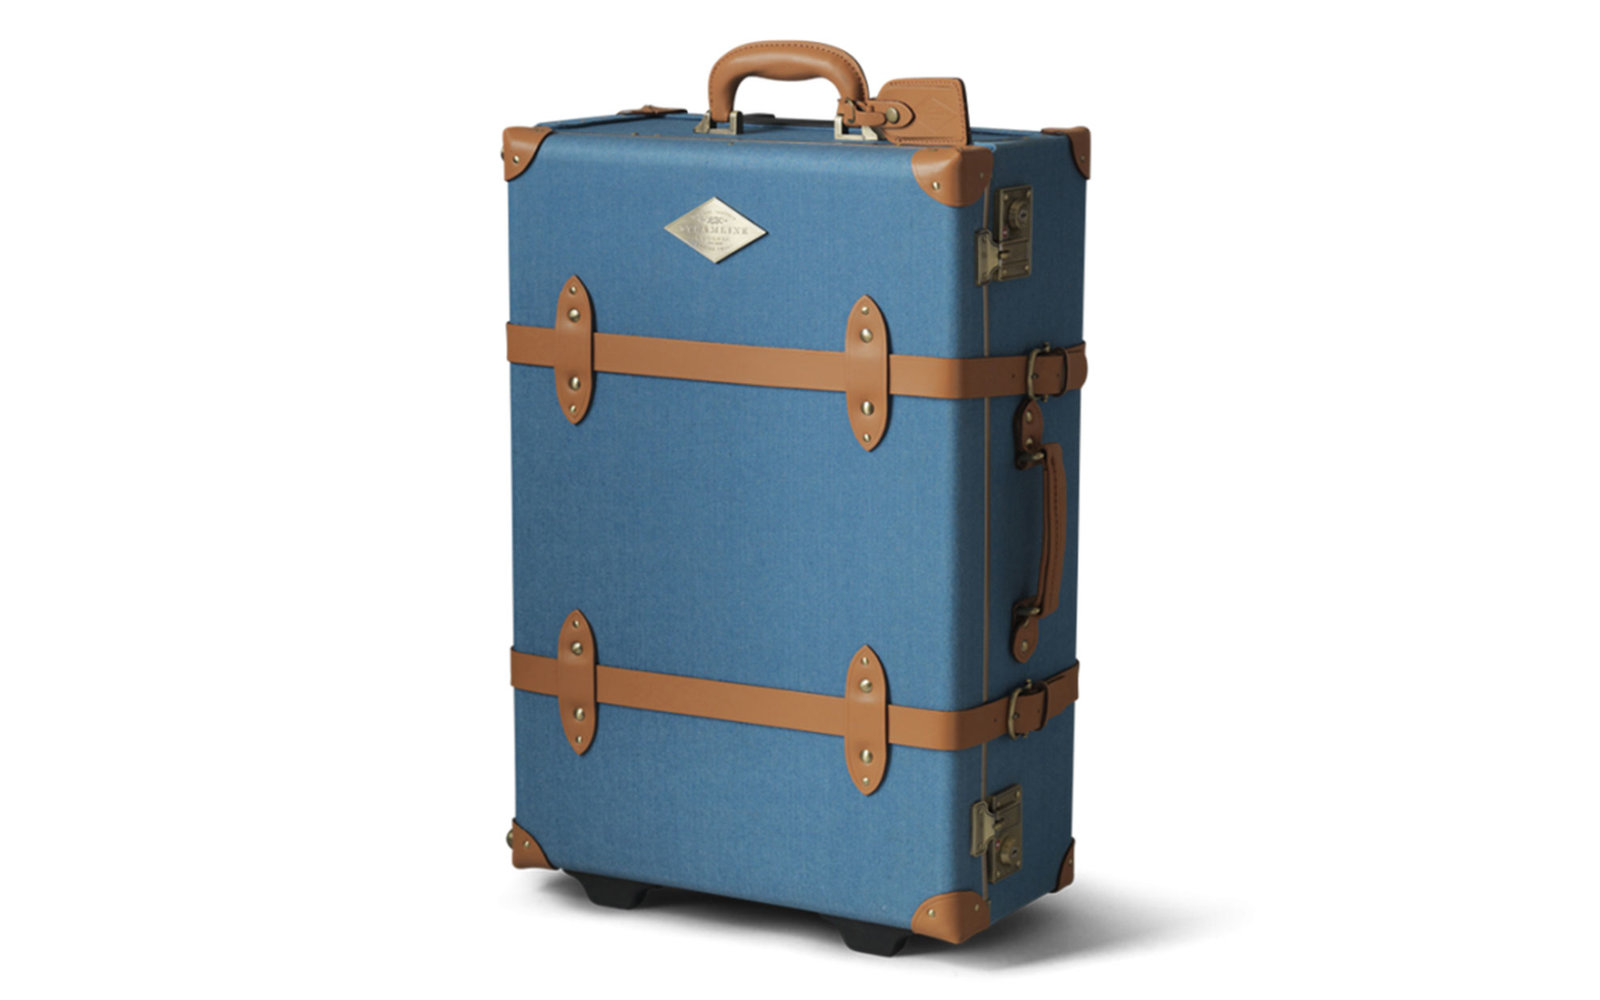 designer luggage